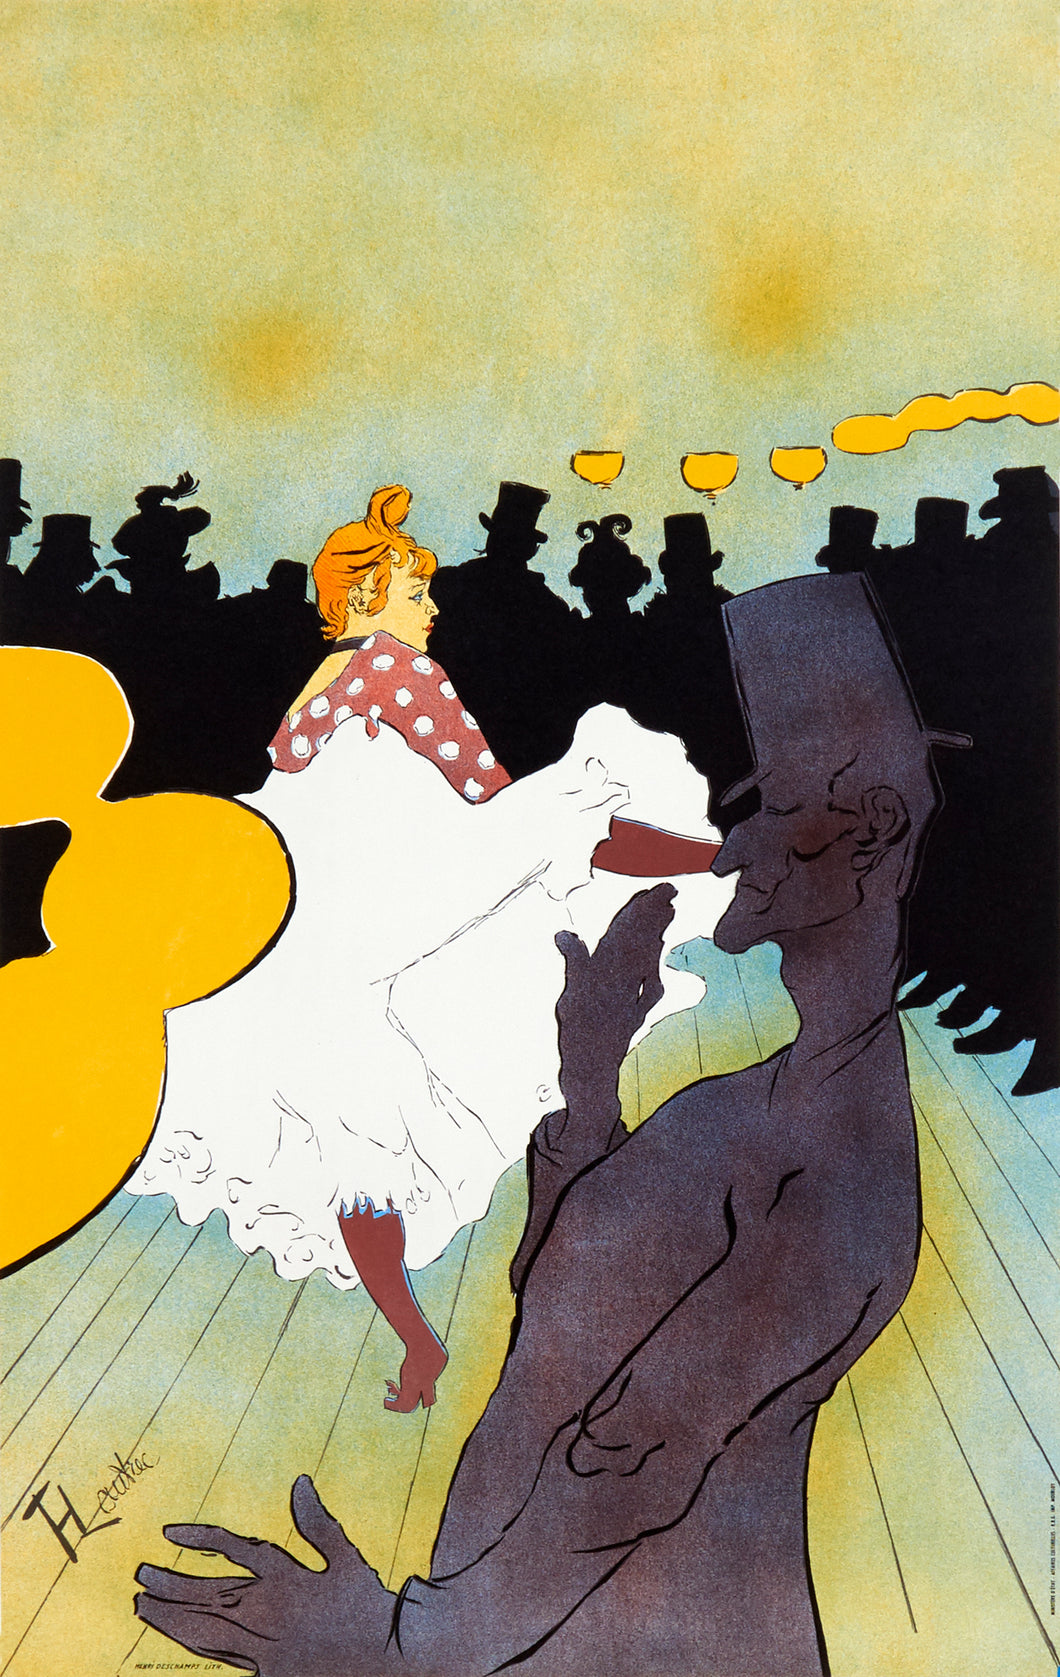 La Goulue by Henri de Toulouse-Lautrec lithographic poster